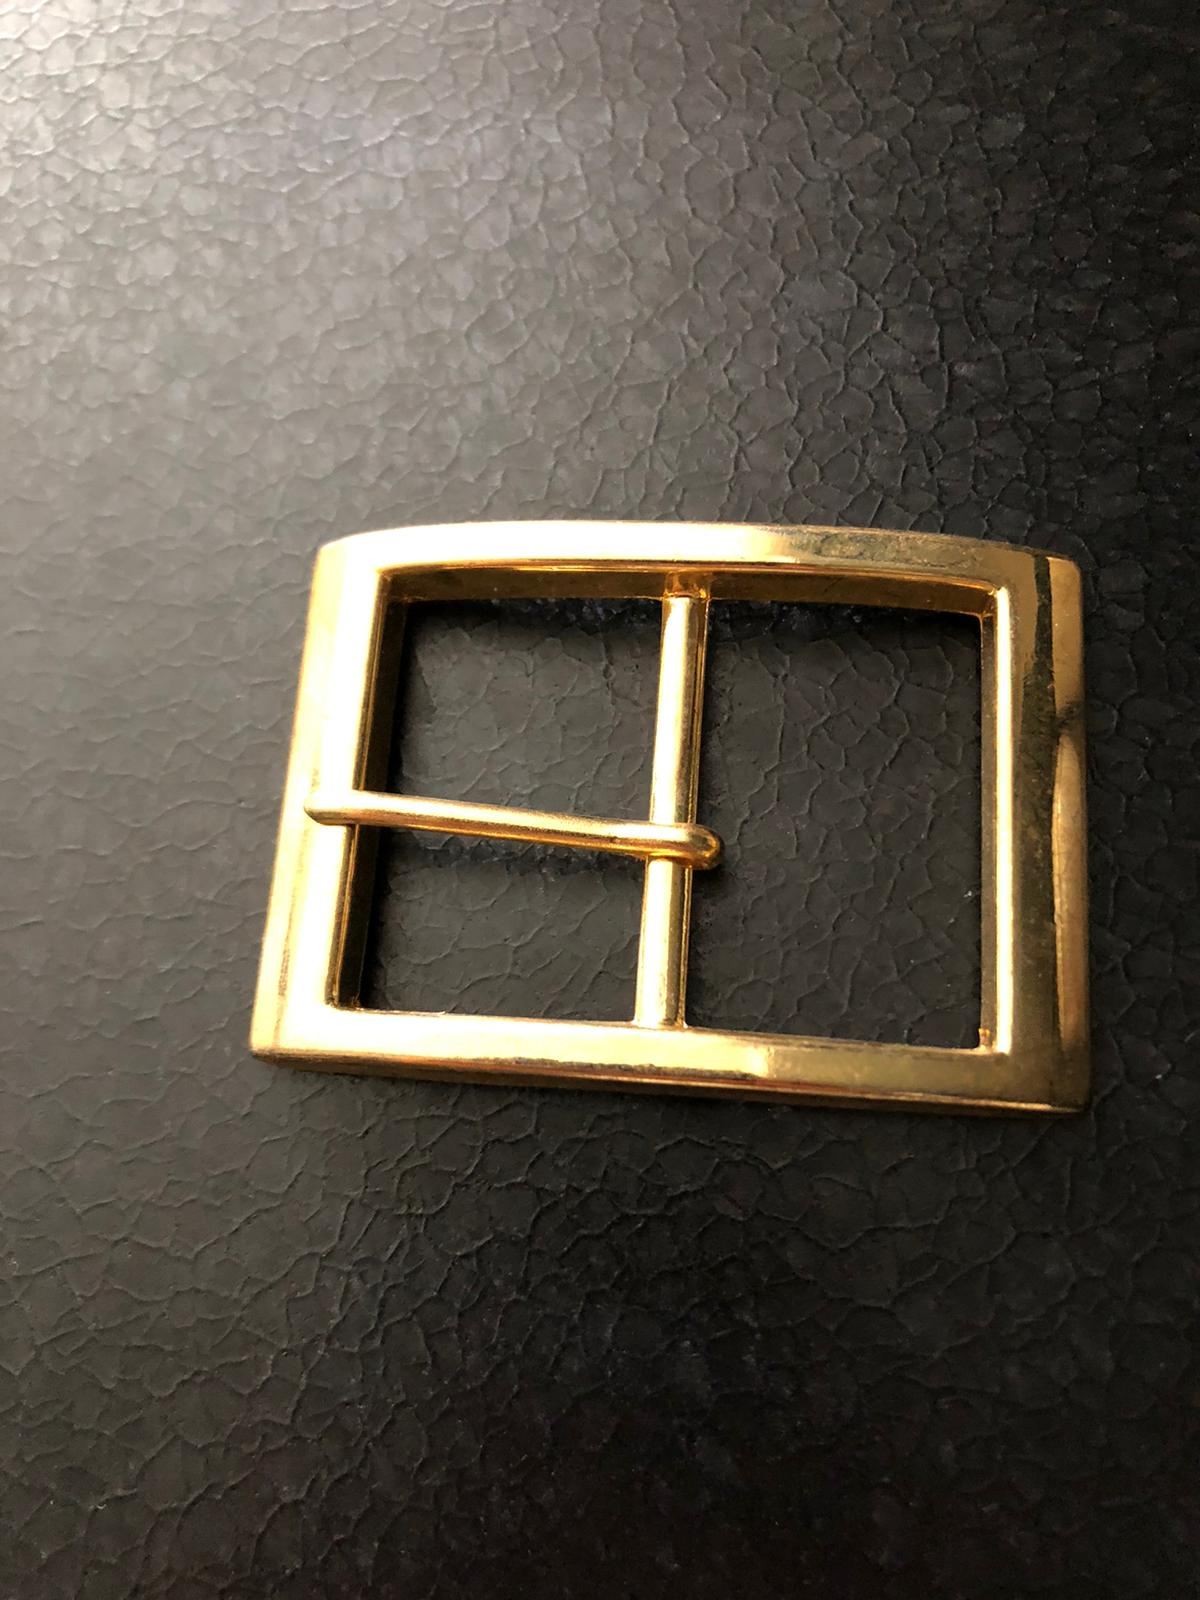 Over 5,000 Classic Brass + Chrome Belt Buckles and Loops